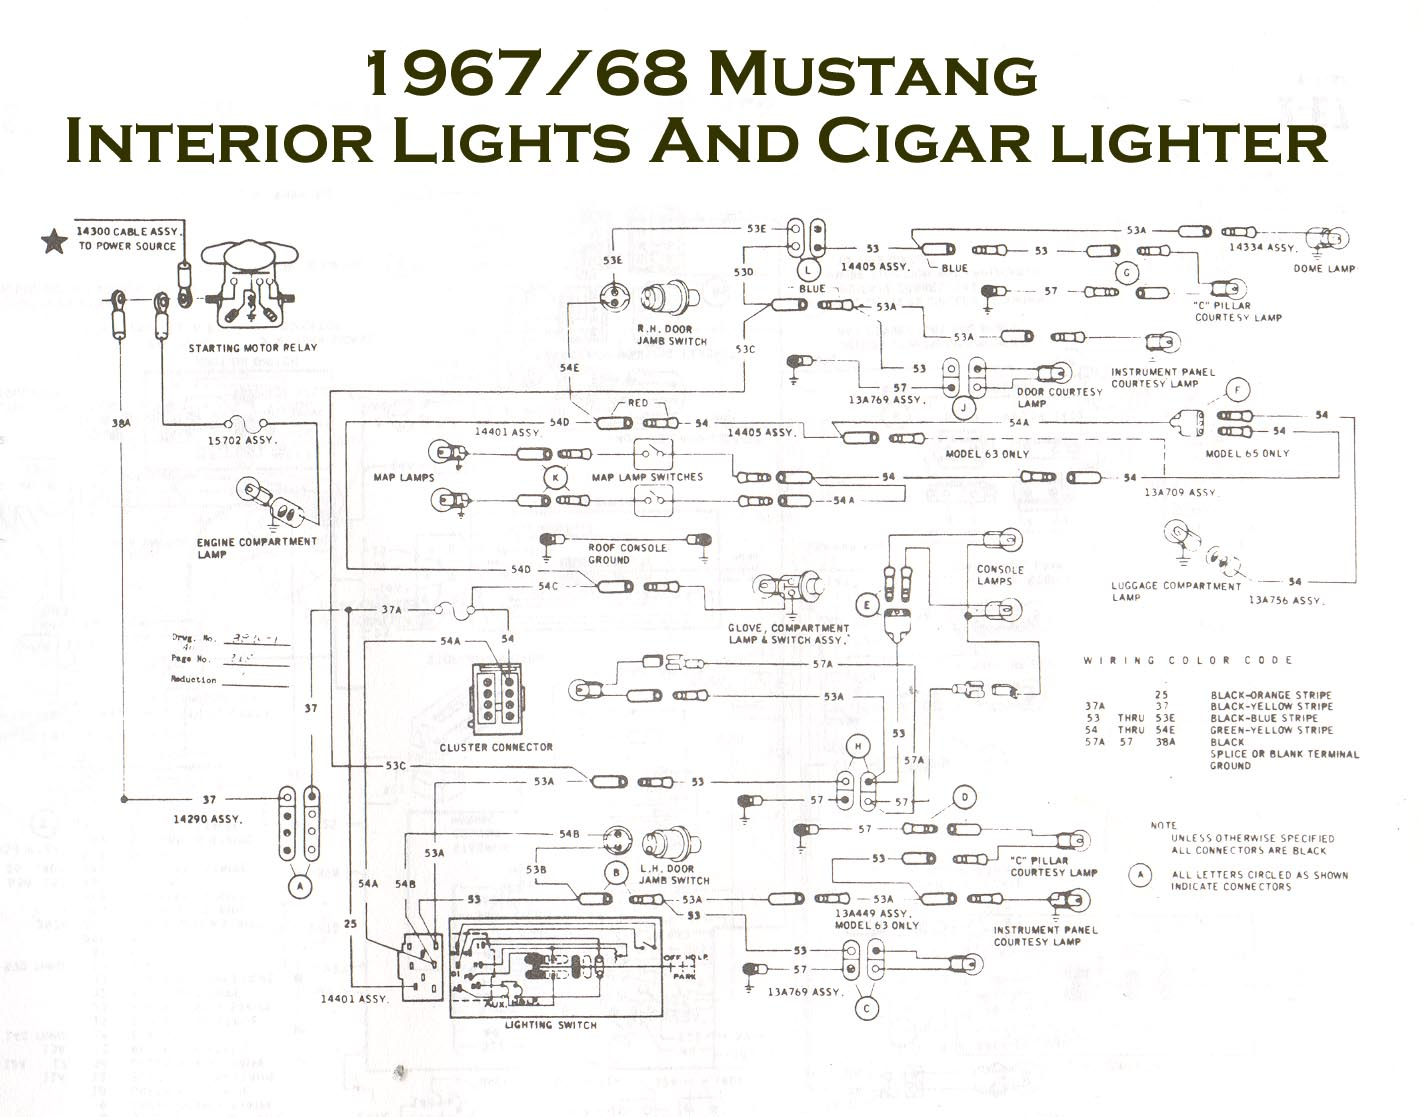 68 Mustang Turn Signal Wiring Diagram 1968 Mustang Wiring Diagram 67  Mustang Turn Signal Wiring Diagram